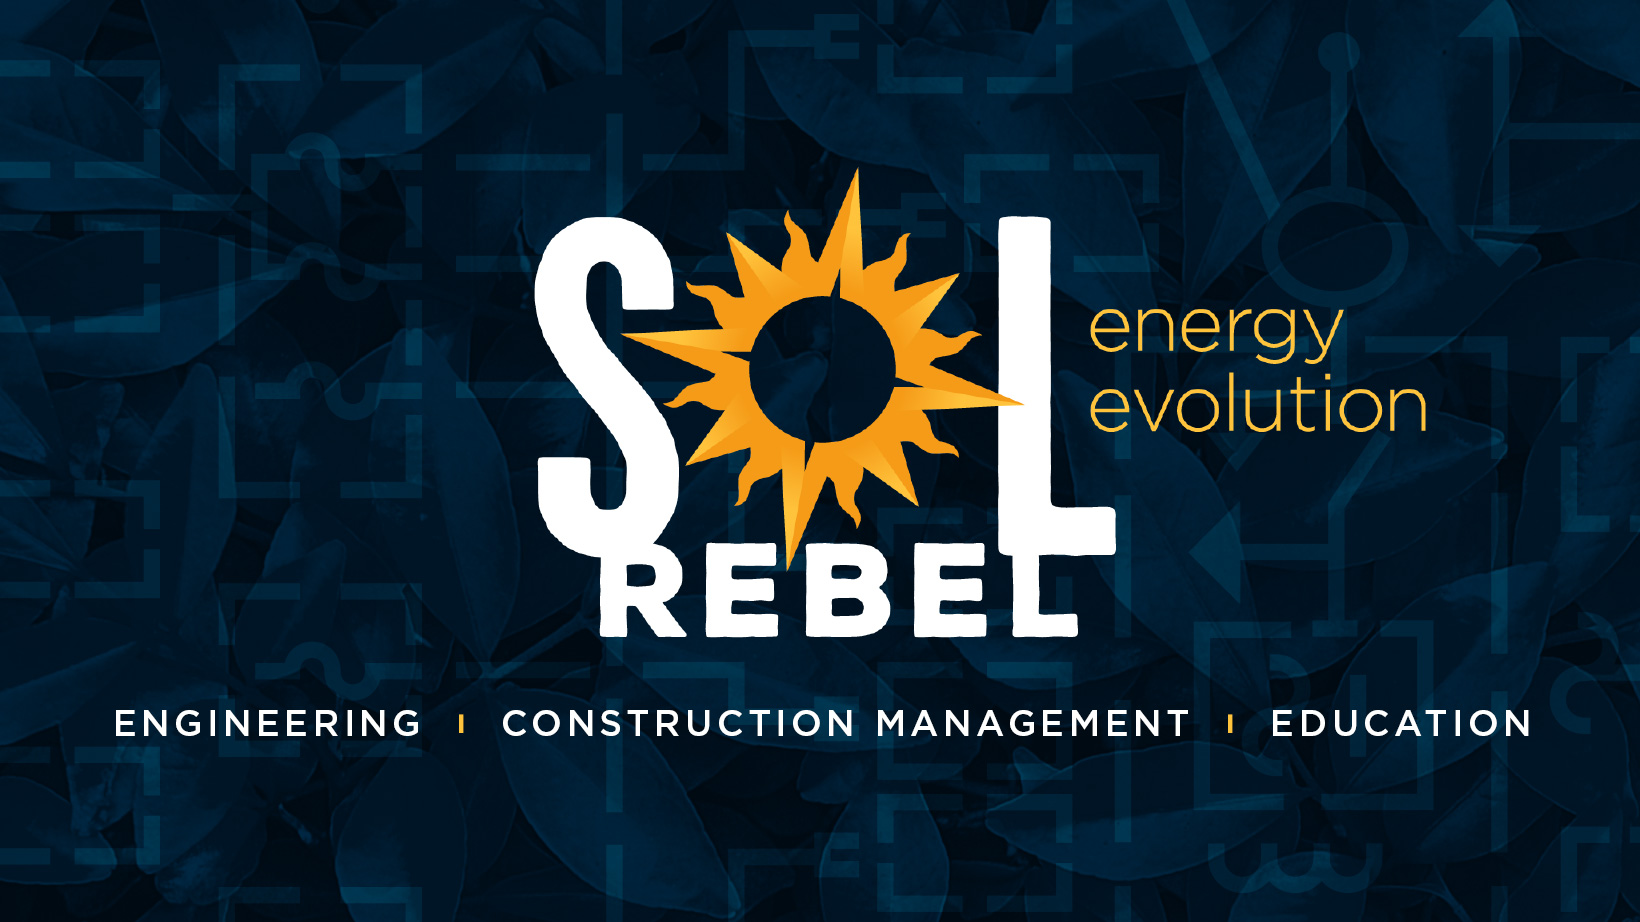 Sol Rebel Facebook cover solar energy design